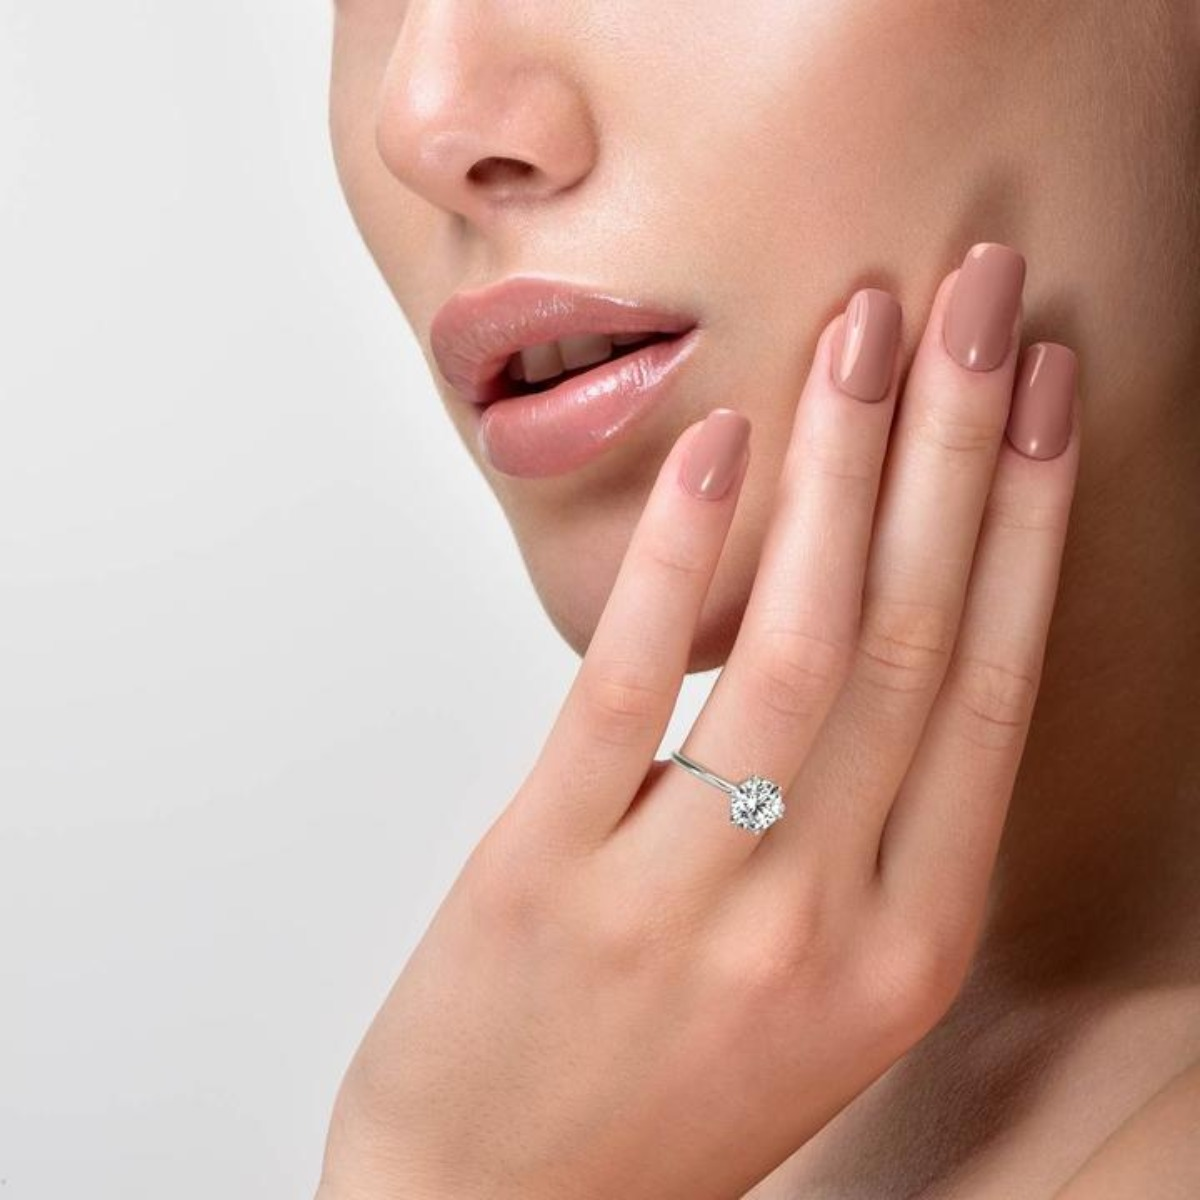 Your Ring Shopping Problems Solved with Stefano Navi's Lab-grown Diamonds